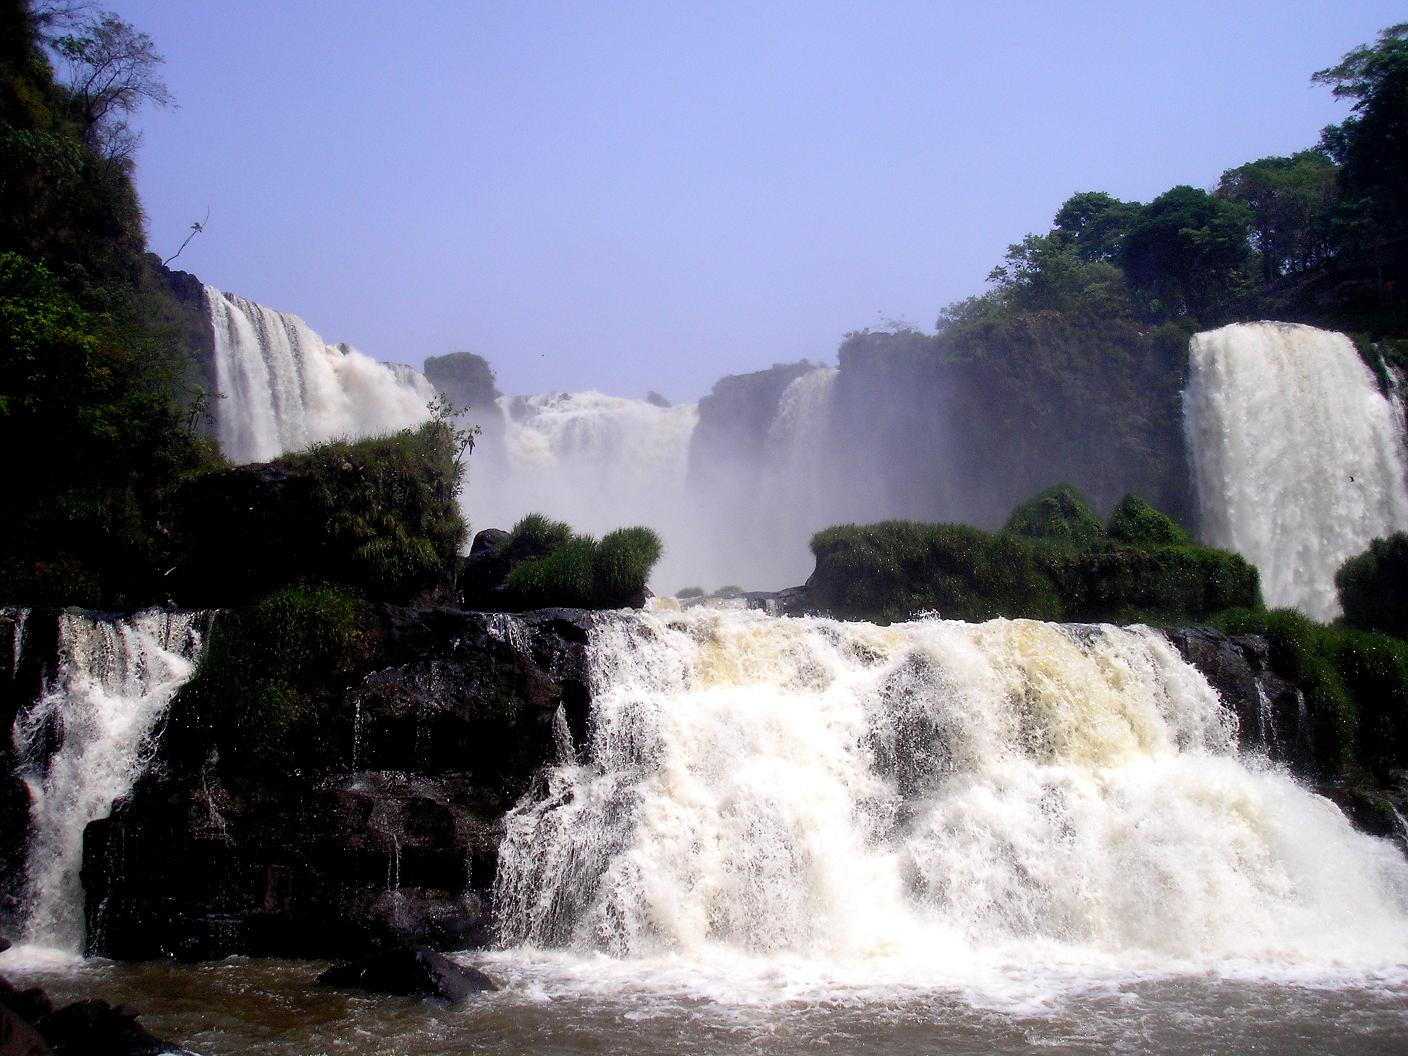 One of the foremost natural attractions of Paraguay is Saltos Del Monday, or Monday Falls.